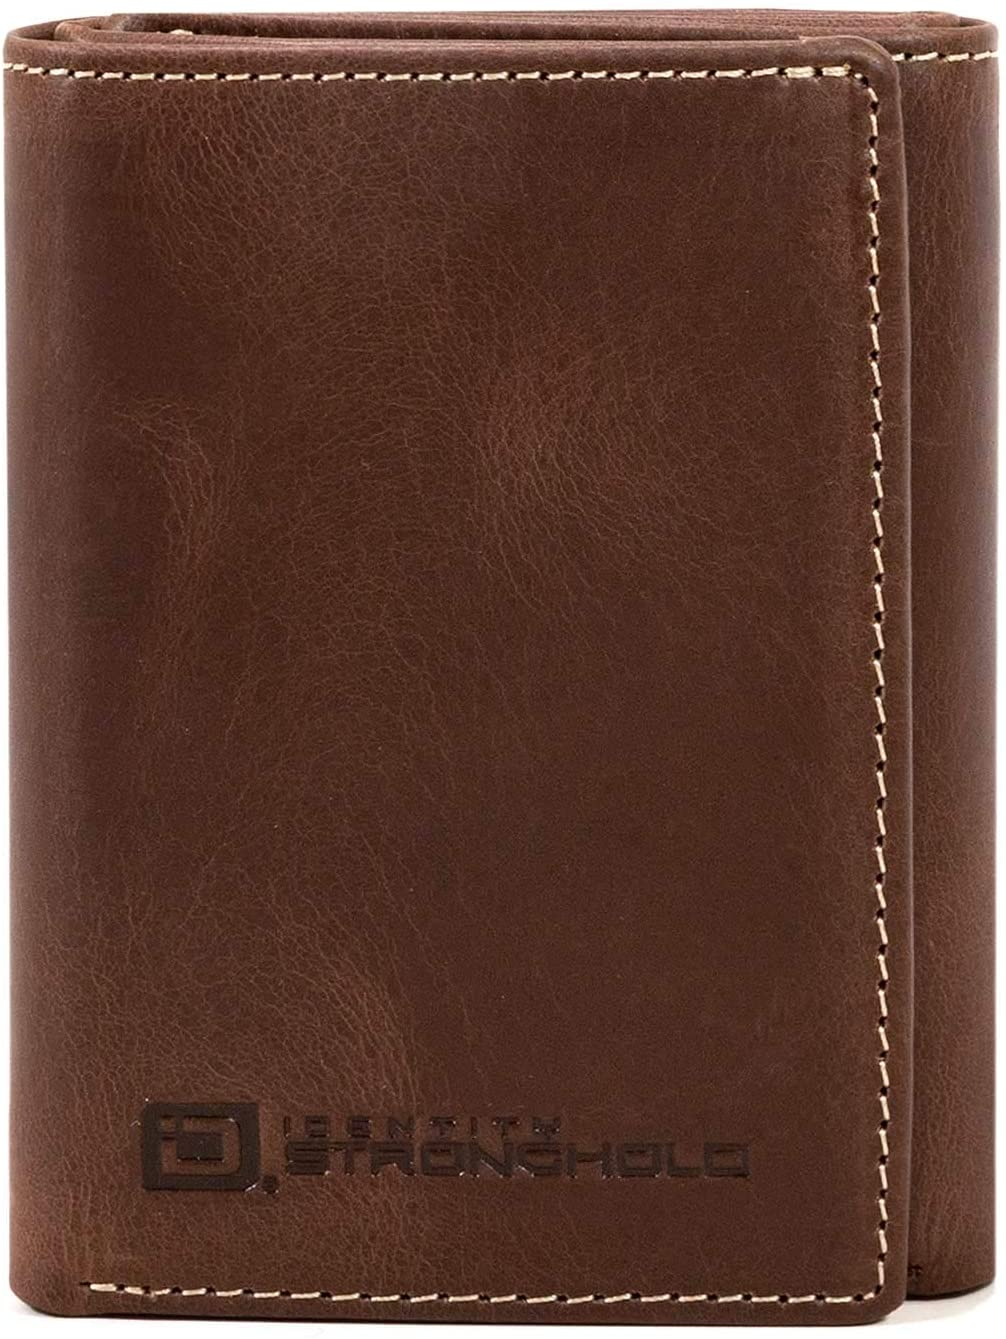 ID Stronghold RFID Blocking Trifold Wallet for Men - Rugged Genuine Leather